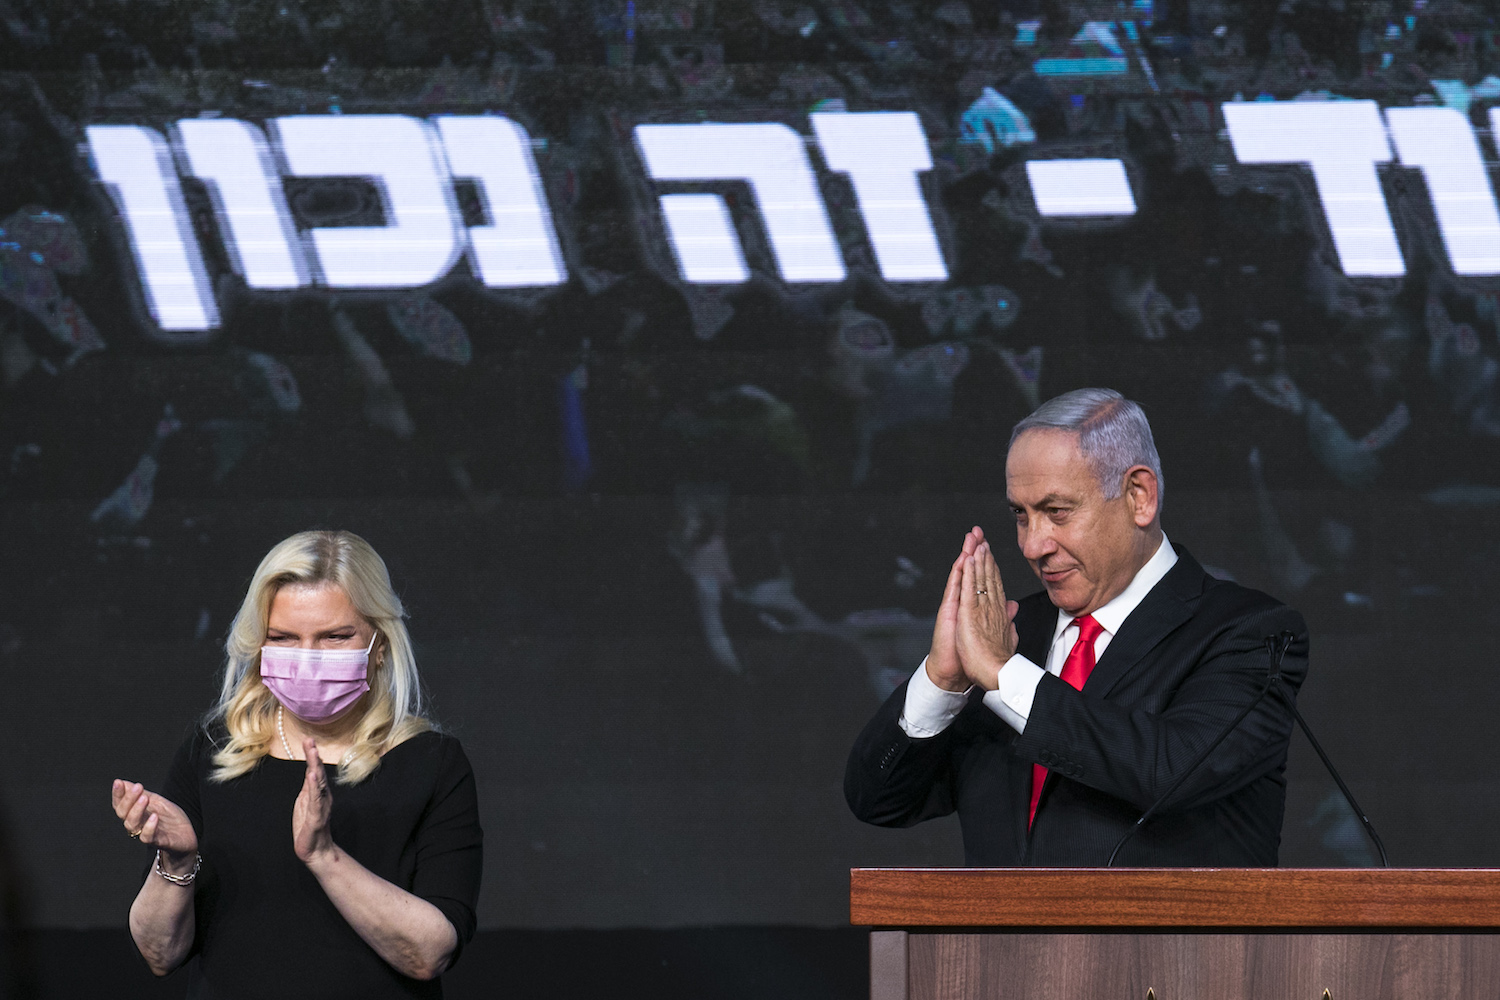 Prime Minister Benjamin Netanyahu addresses his supporters on the night of the Israeli elections, Jerusalem, March 24, 2021. (Olivier Fitoussi/Flash90)